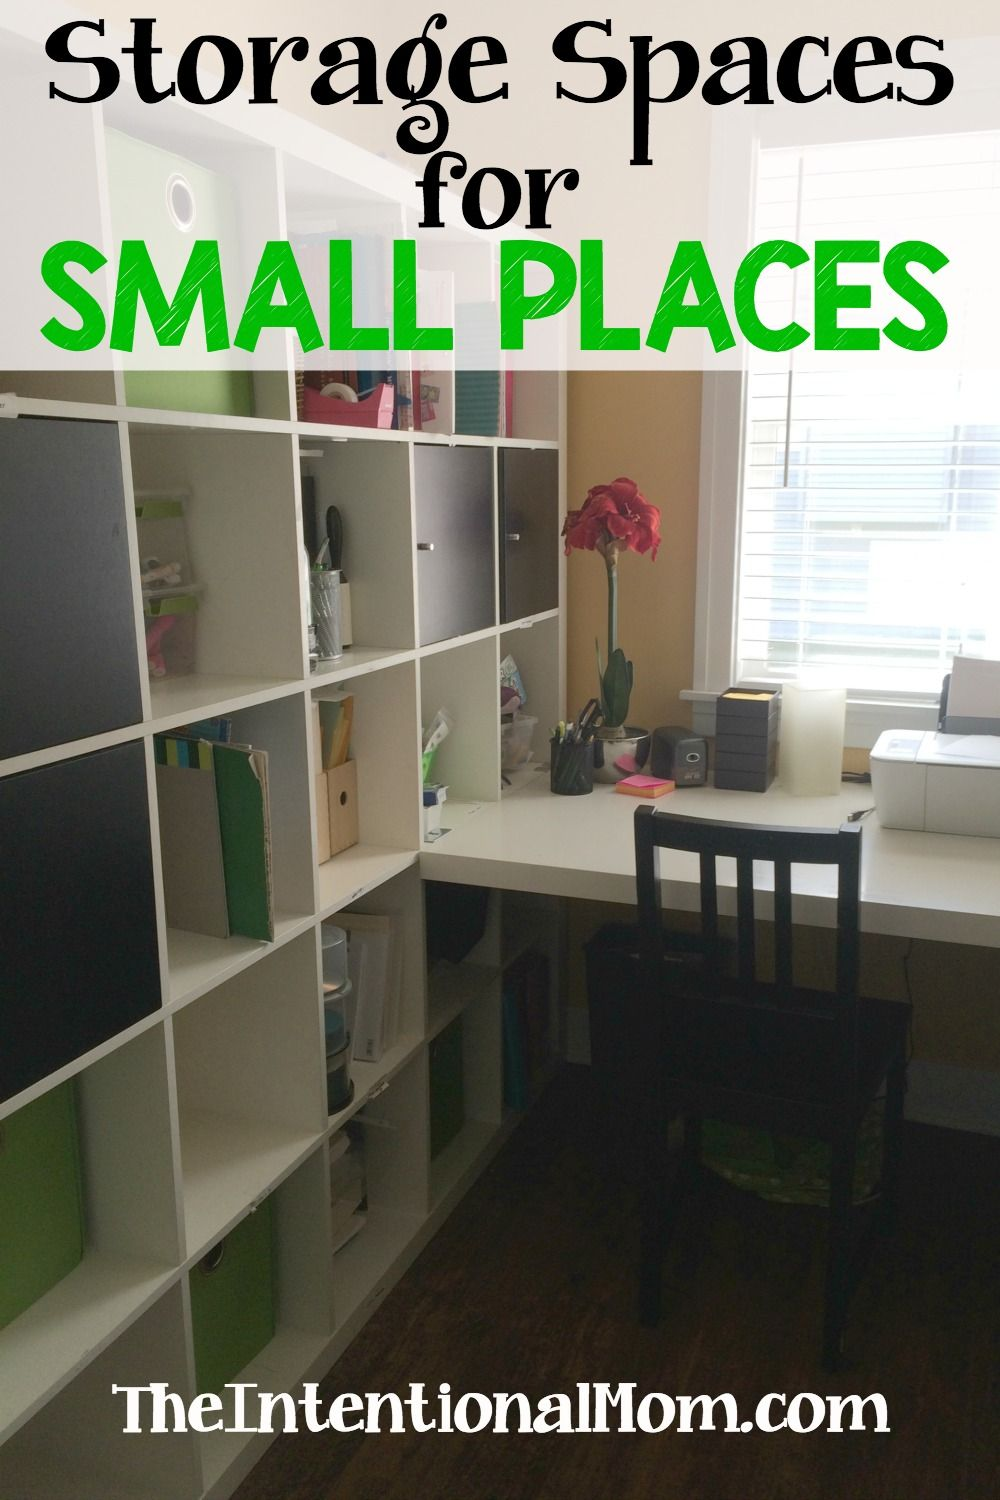 Beautiful Are You Looking For Some Creative Storage Spaces For Small Places? With A  Large Family Good Ideas